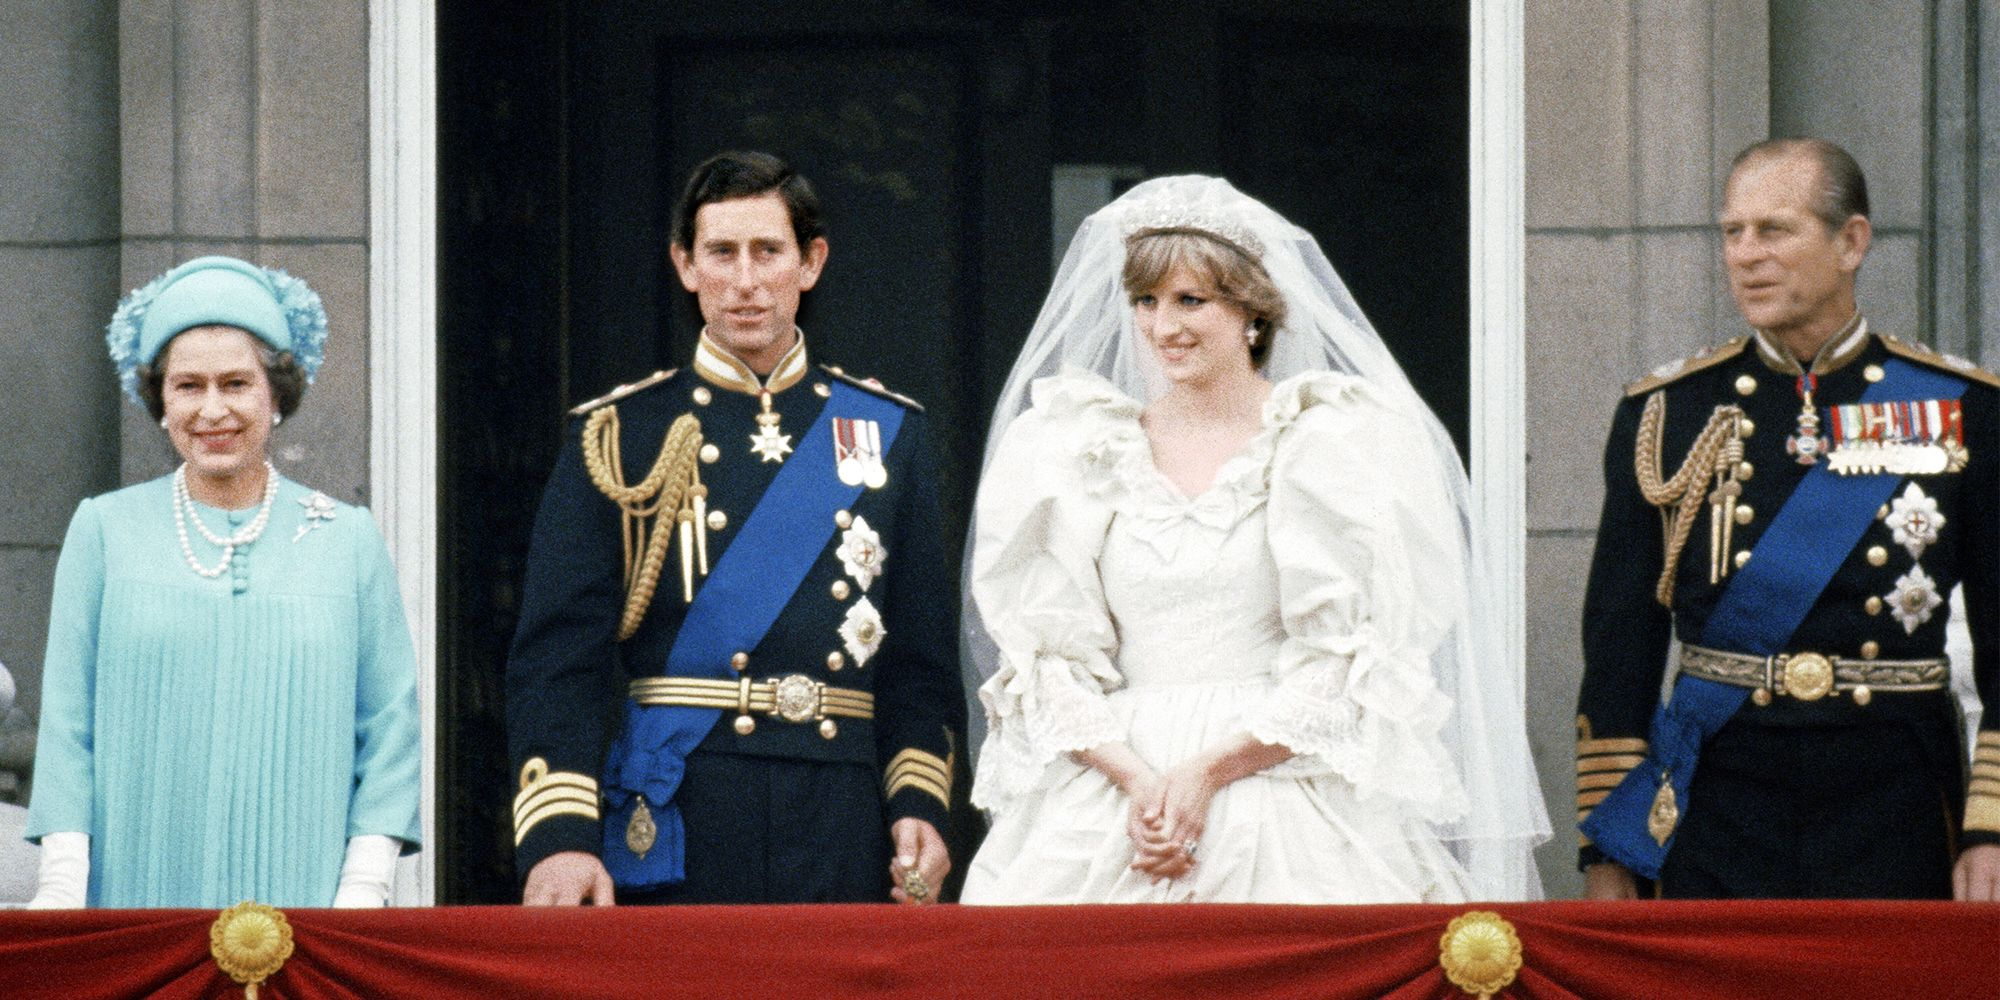 dc3c66330b63f What Royal Family Wears to Weddings - 42 Best Royal Wedding Guest Looks